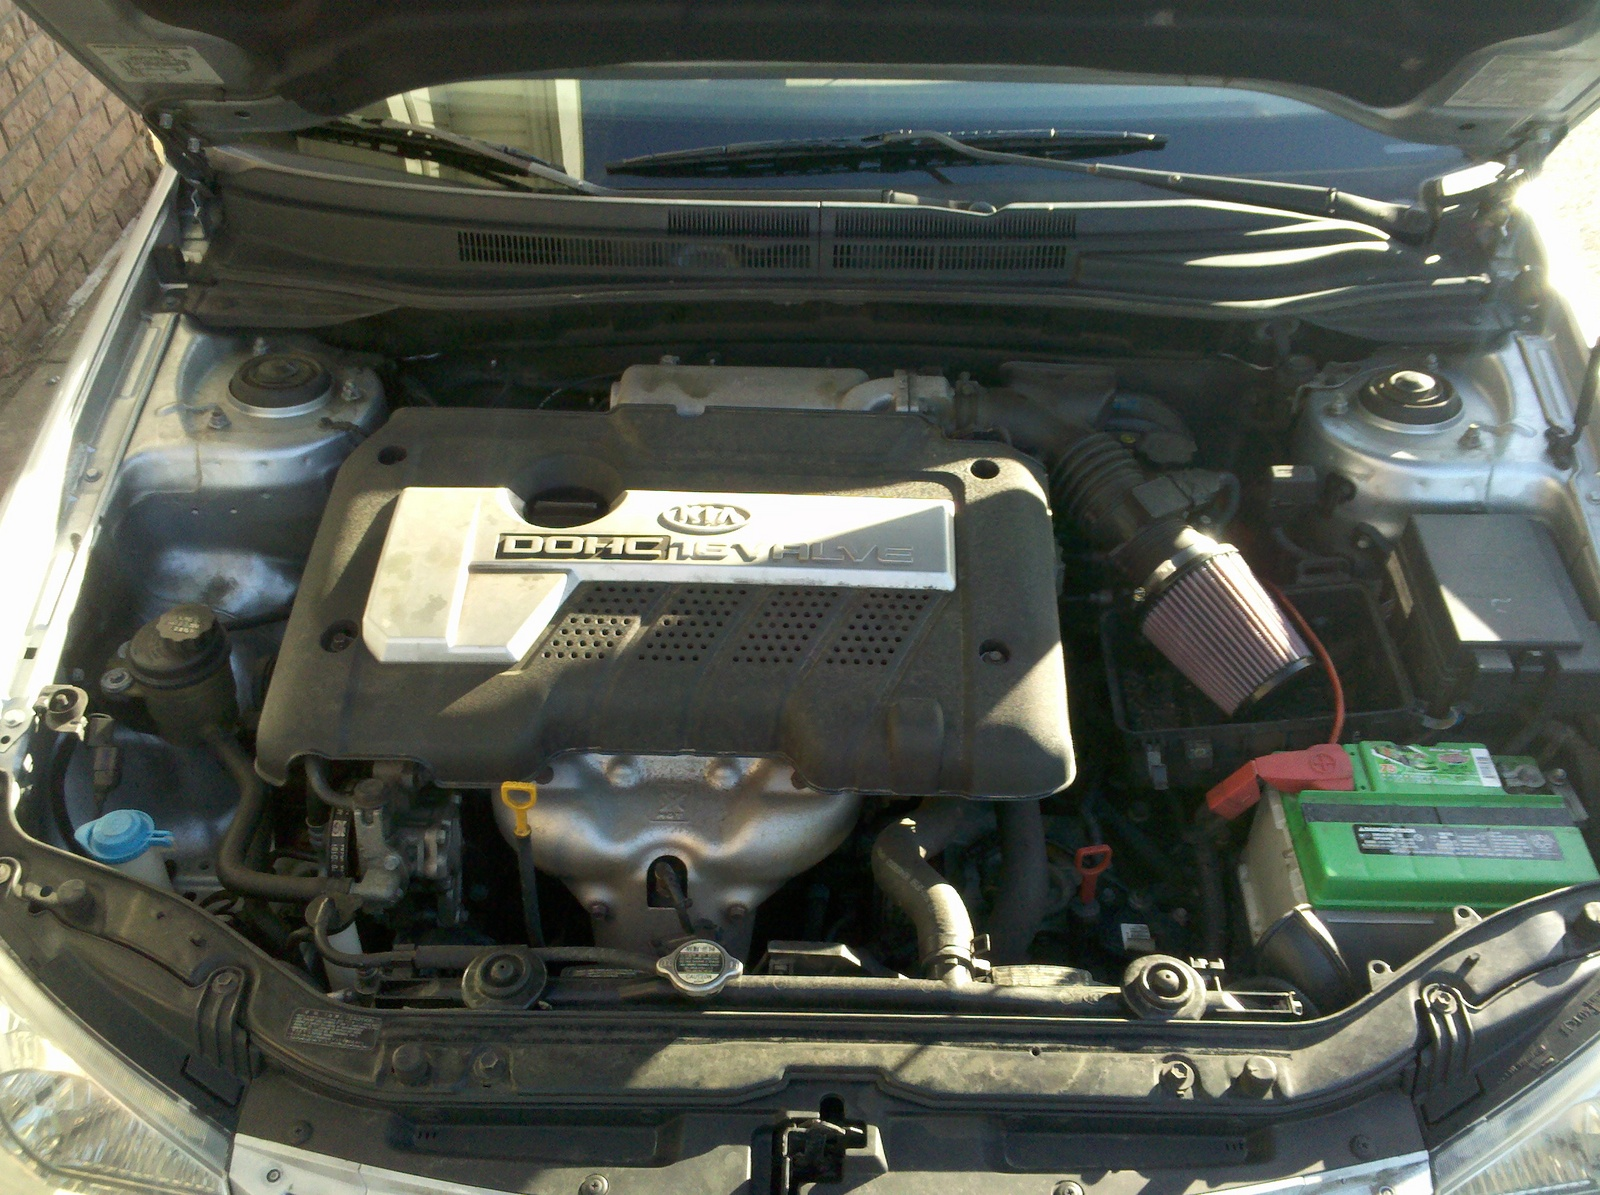 KIA SPECTRA engine